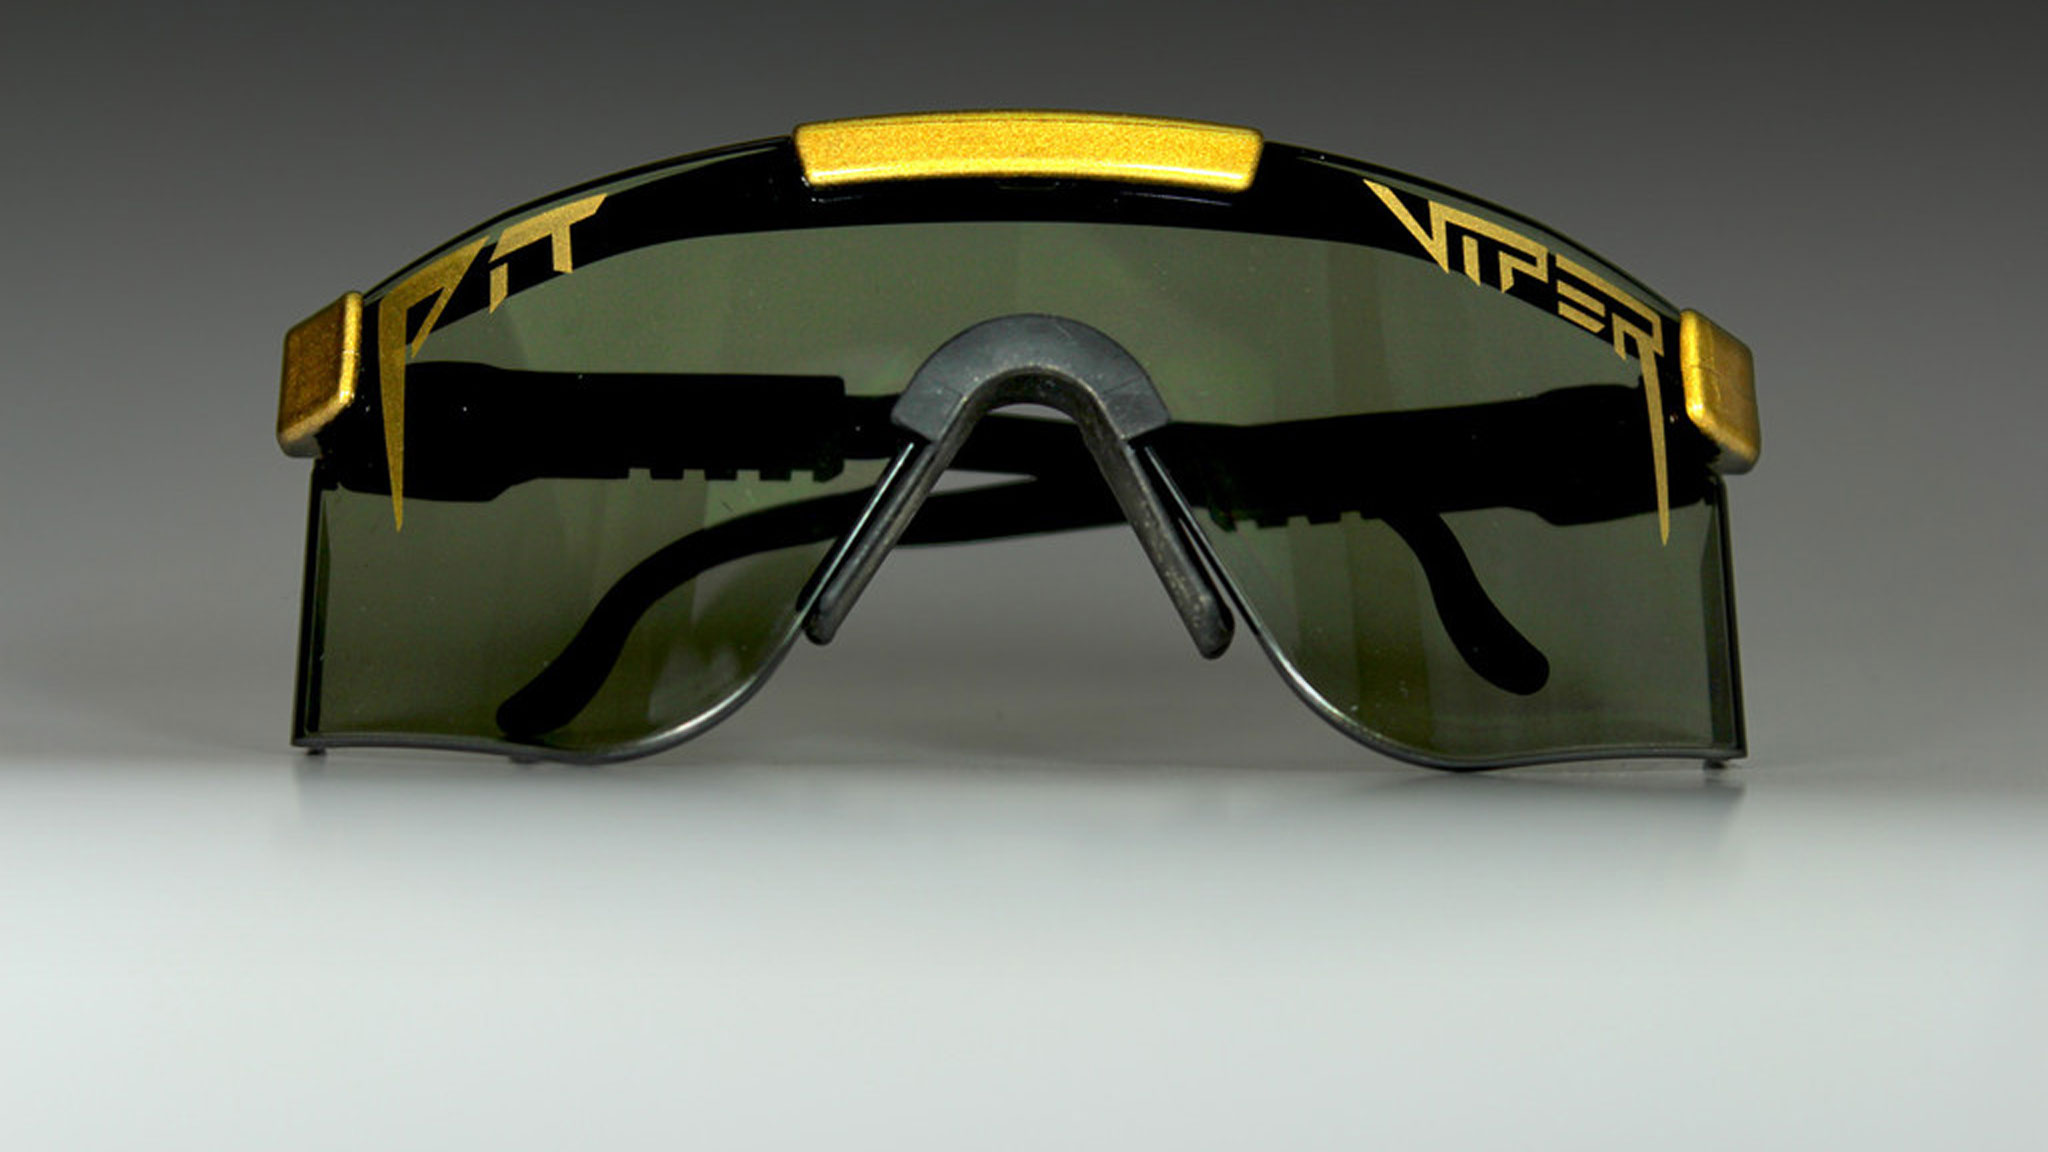 Pit Viper Sunglasses The Best Sunglasses